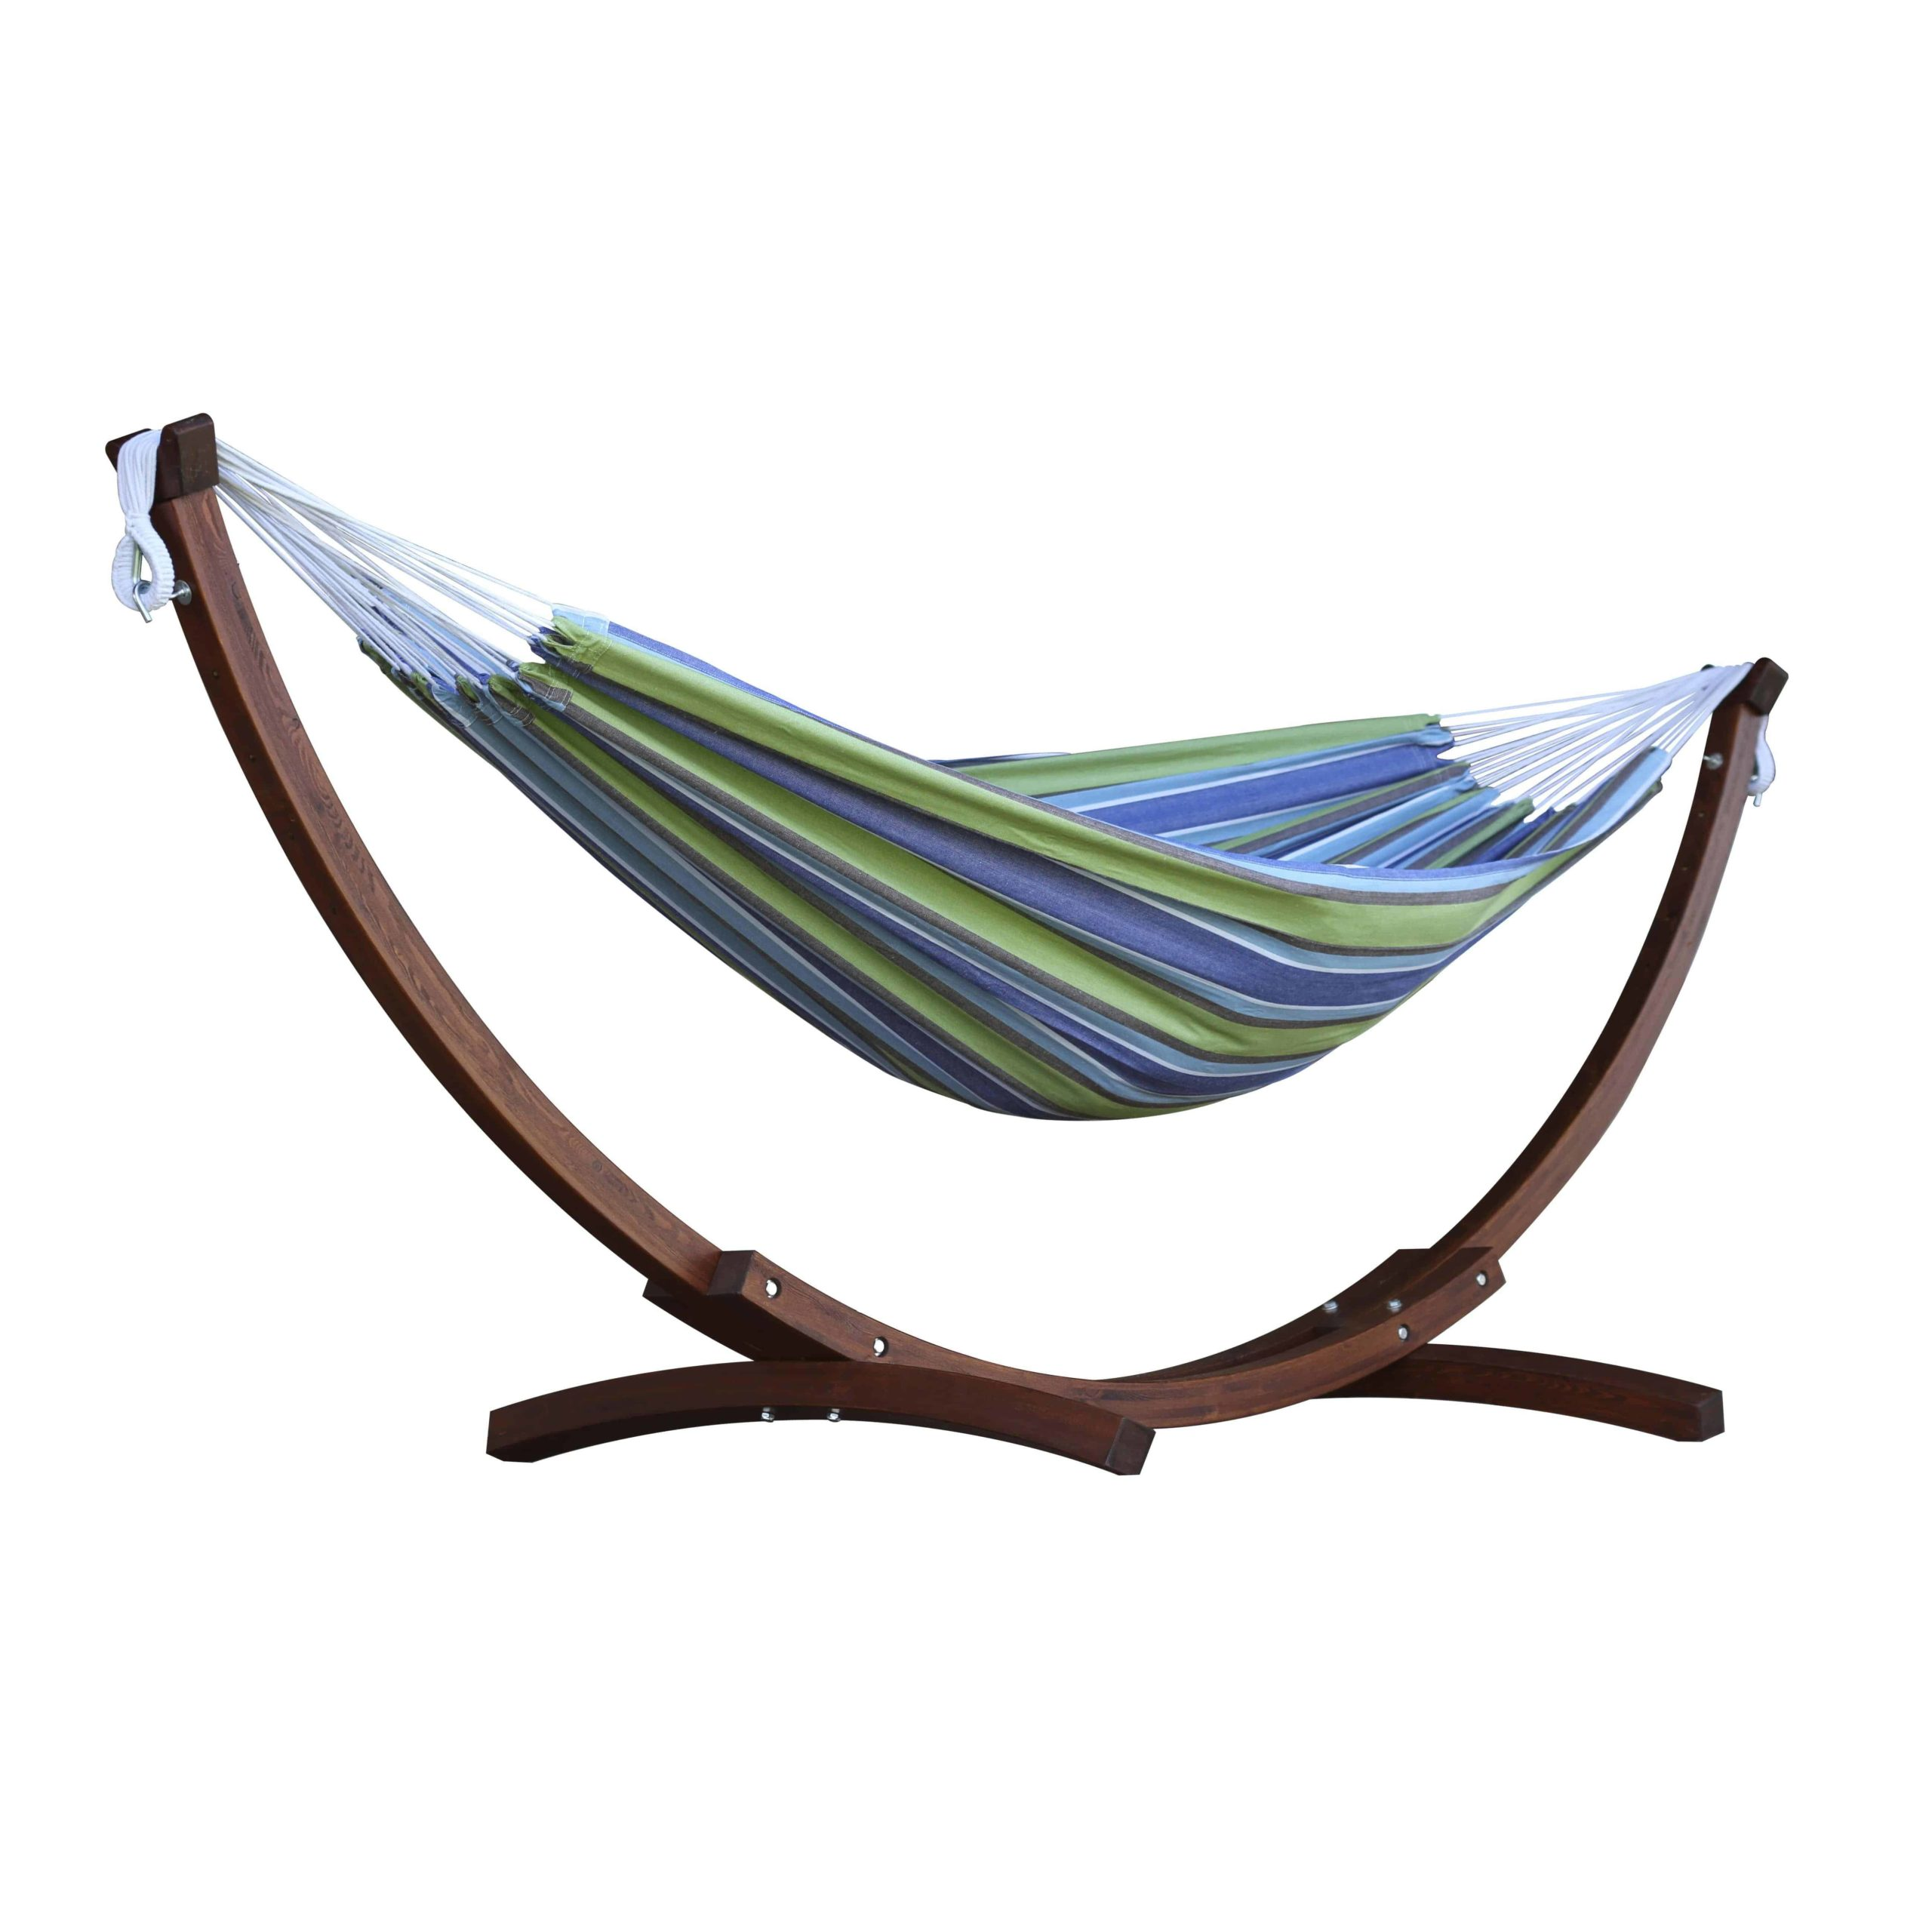 Double-Cotton-Hammock-with-Solid-Pine-Arc-Hammock-Stand-Oasis featured image